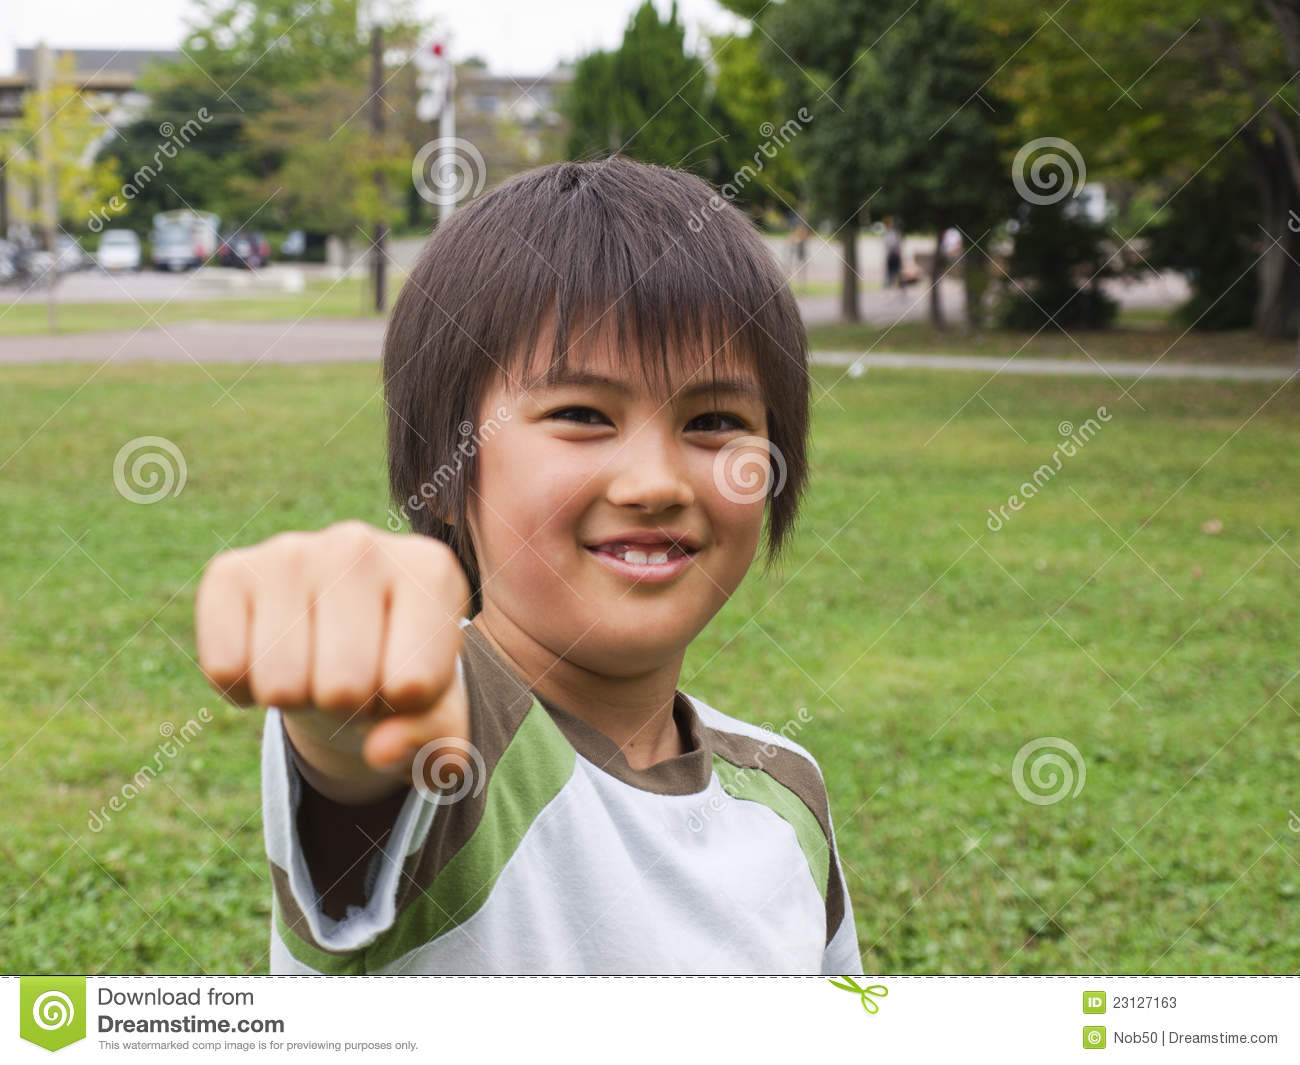 Asian boy fist